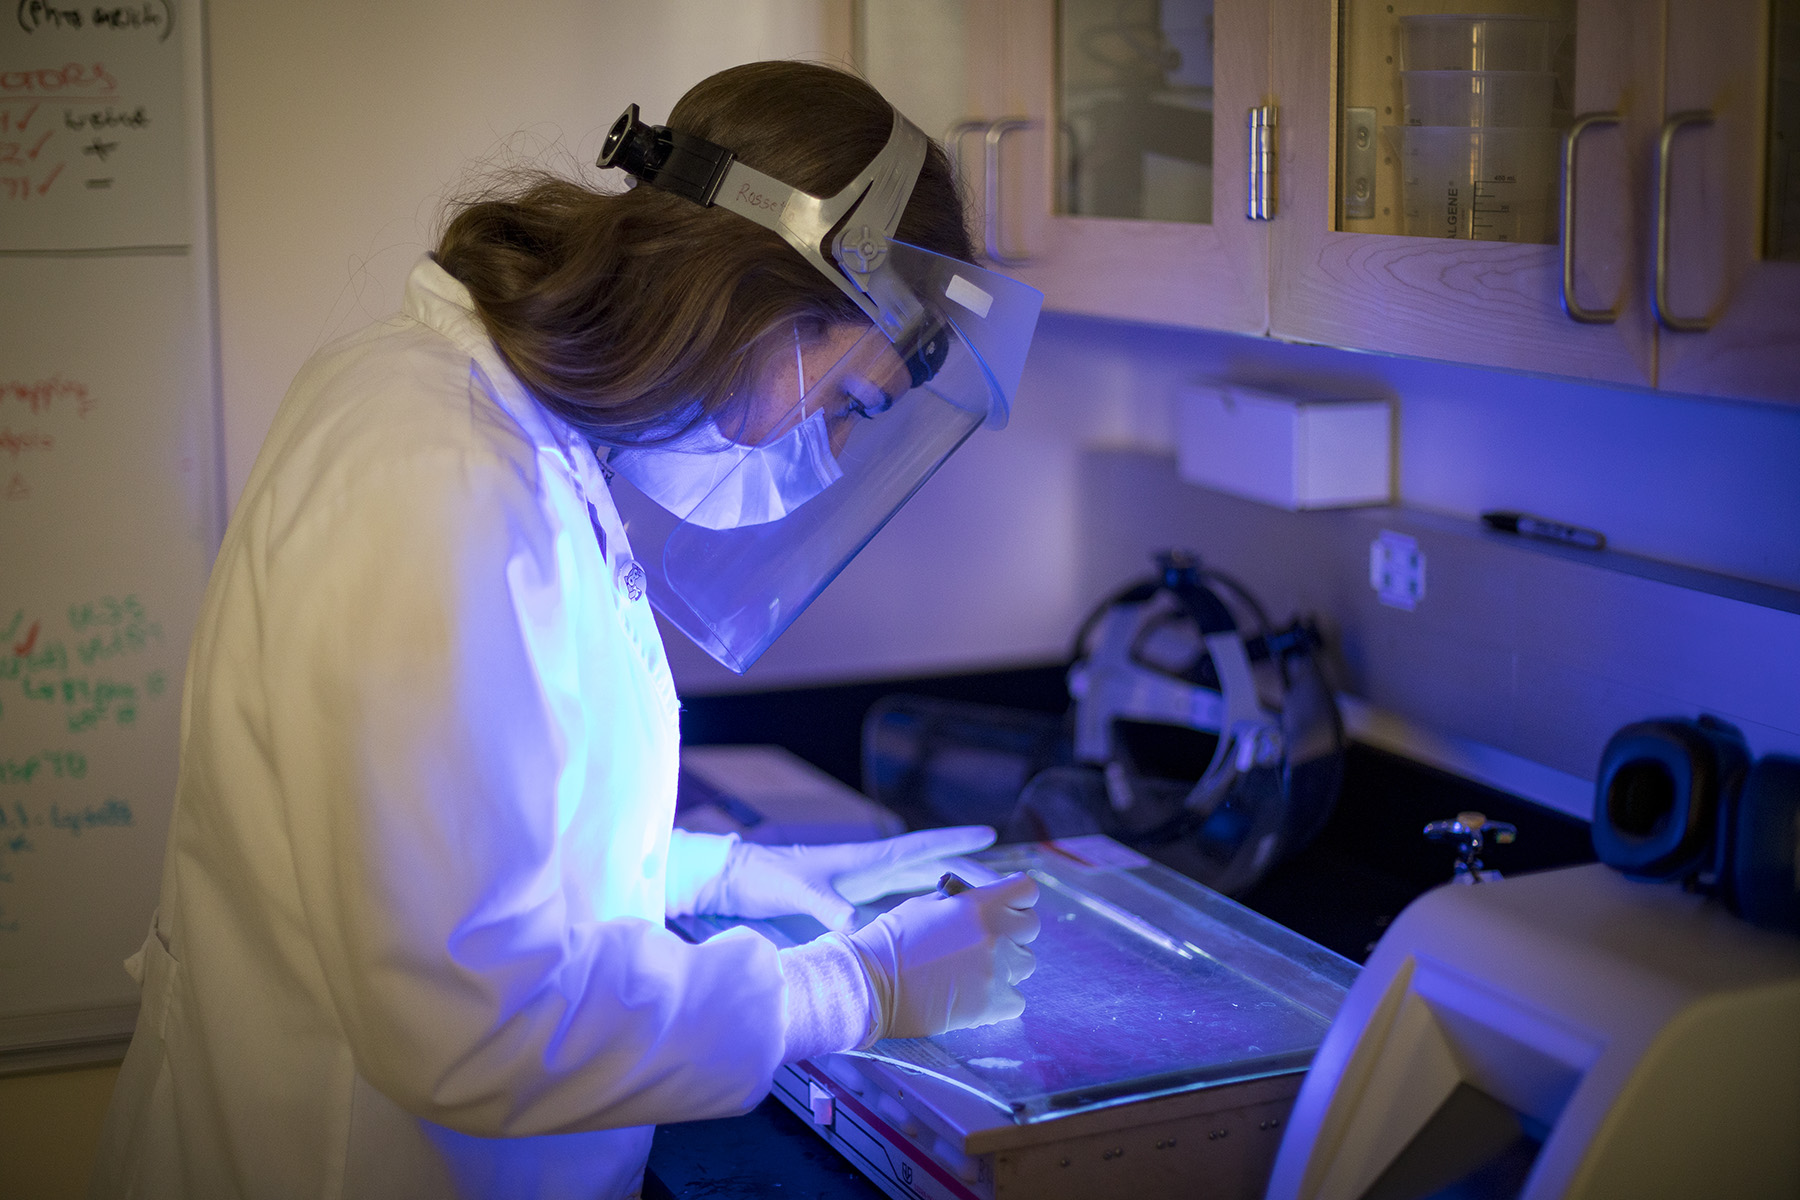 Graduate student Salome Manska analyzes human cells under fluorescent microscope in the Verma Rossetto Lab at the University of Nevada, Reno School of Medicine.